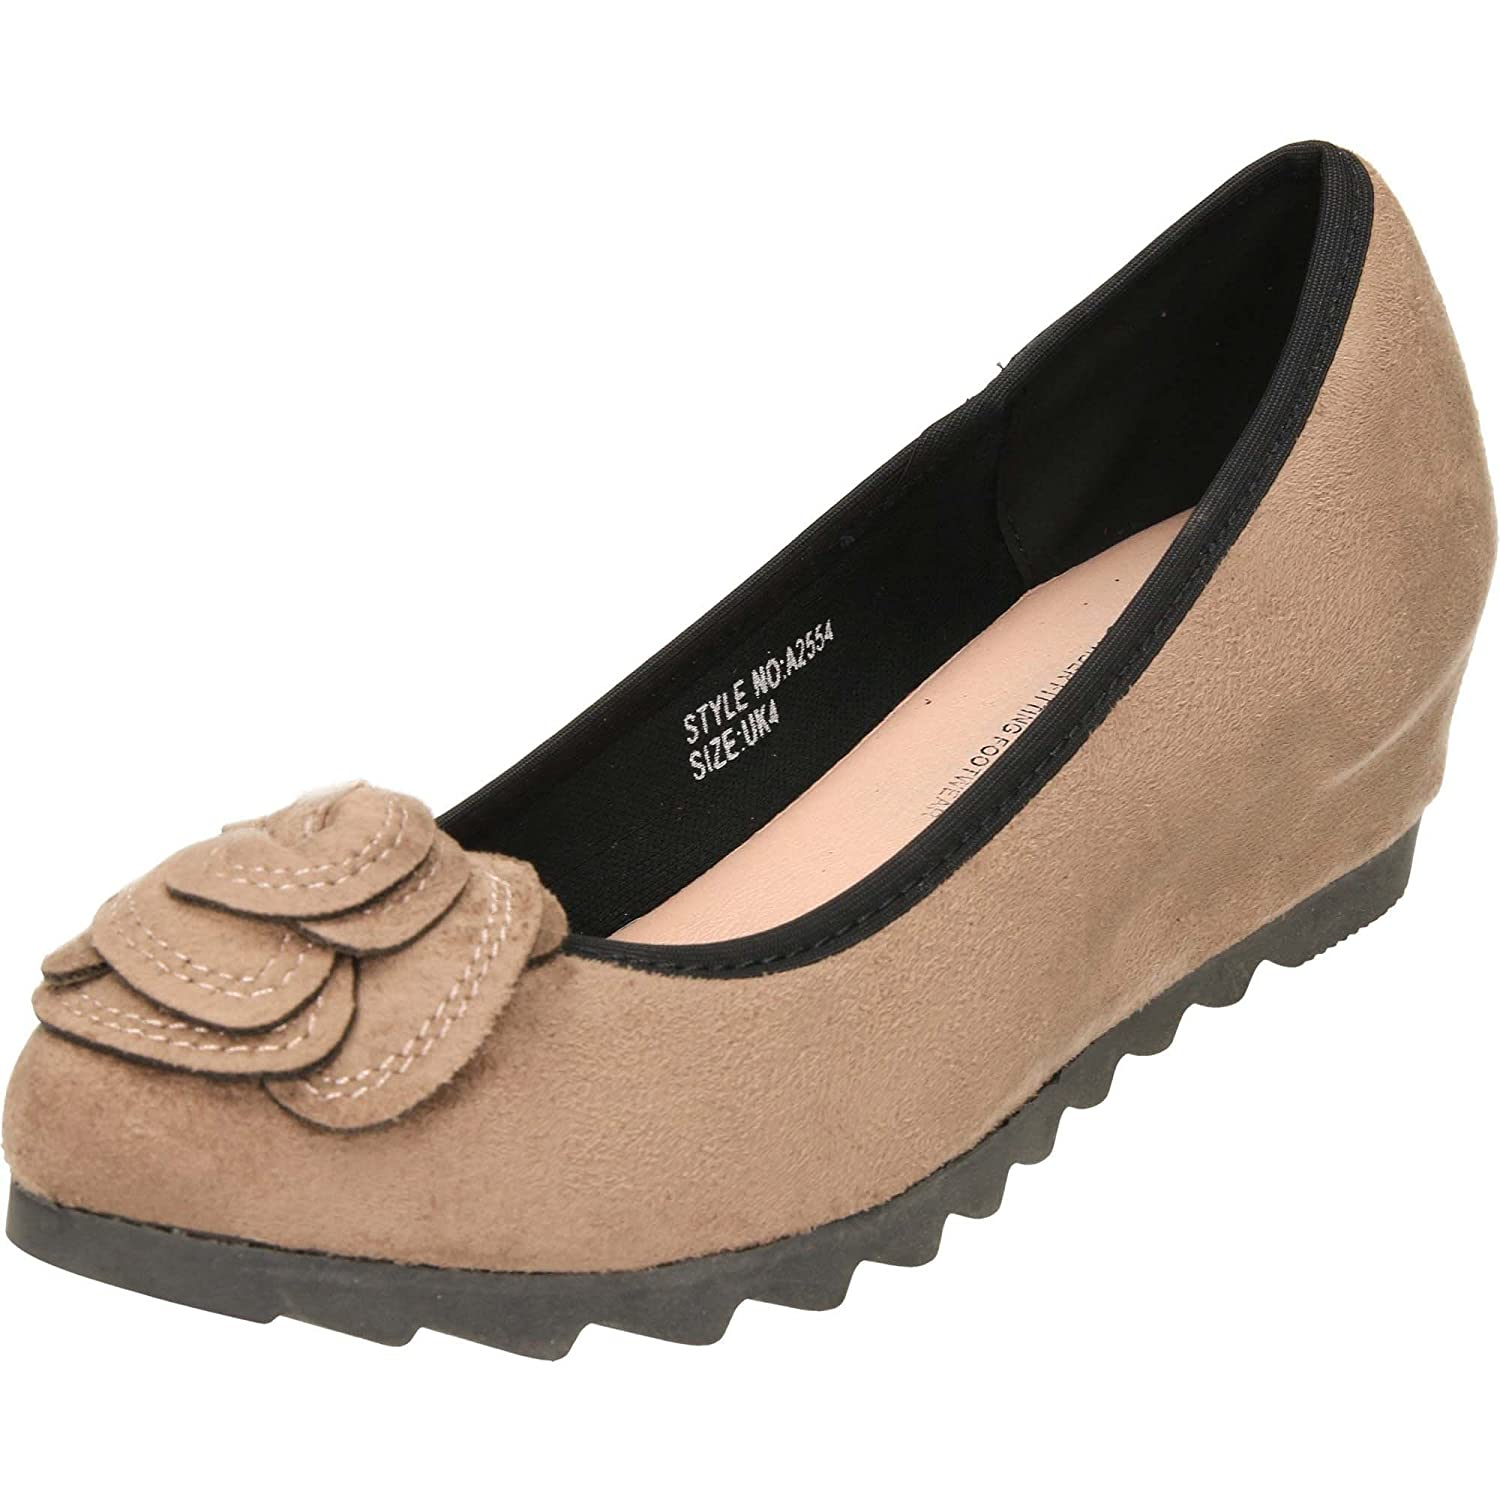 14ec2500844a Comfort Plus Women s Florence Shoes Wide Fit Concealed Wedge  Amazon.co.uk   Shoes   Bags